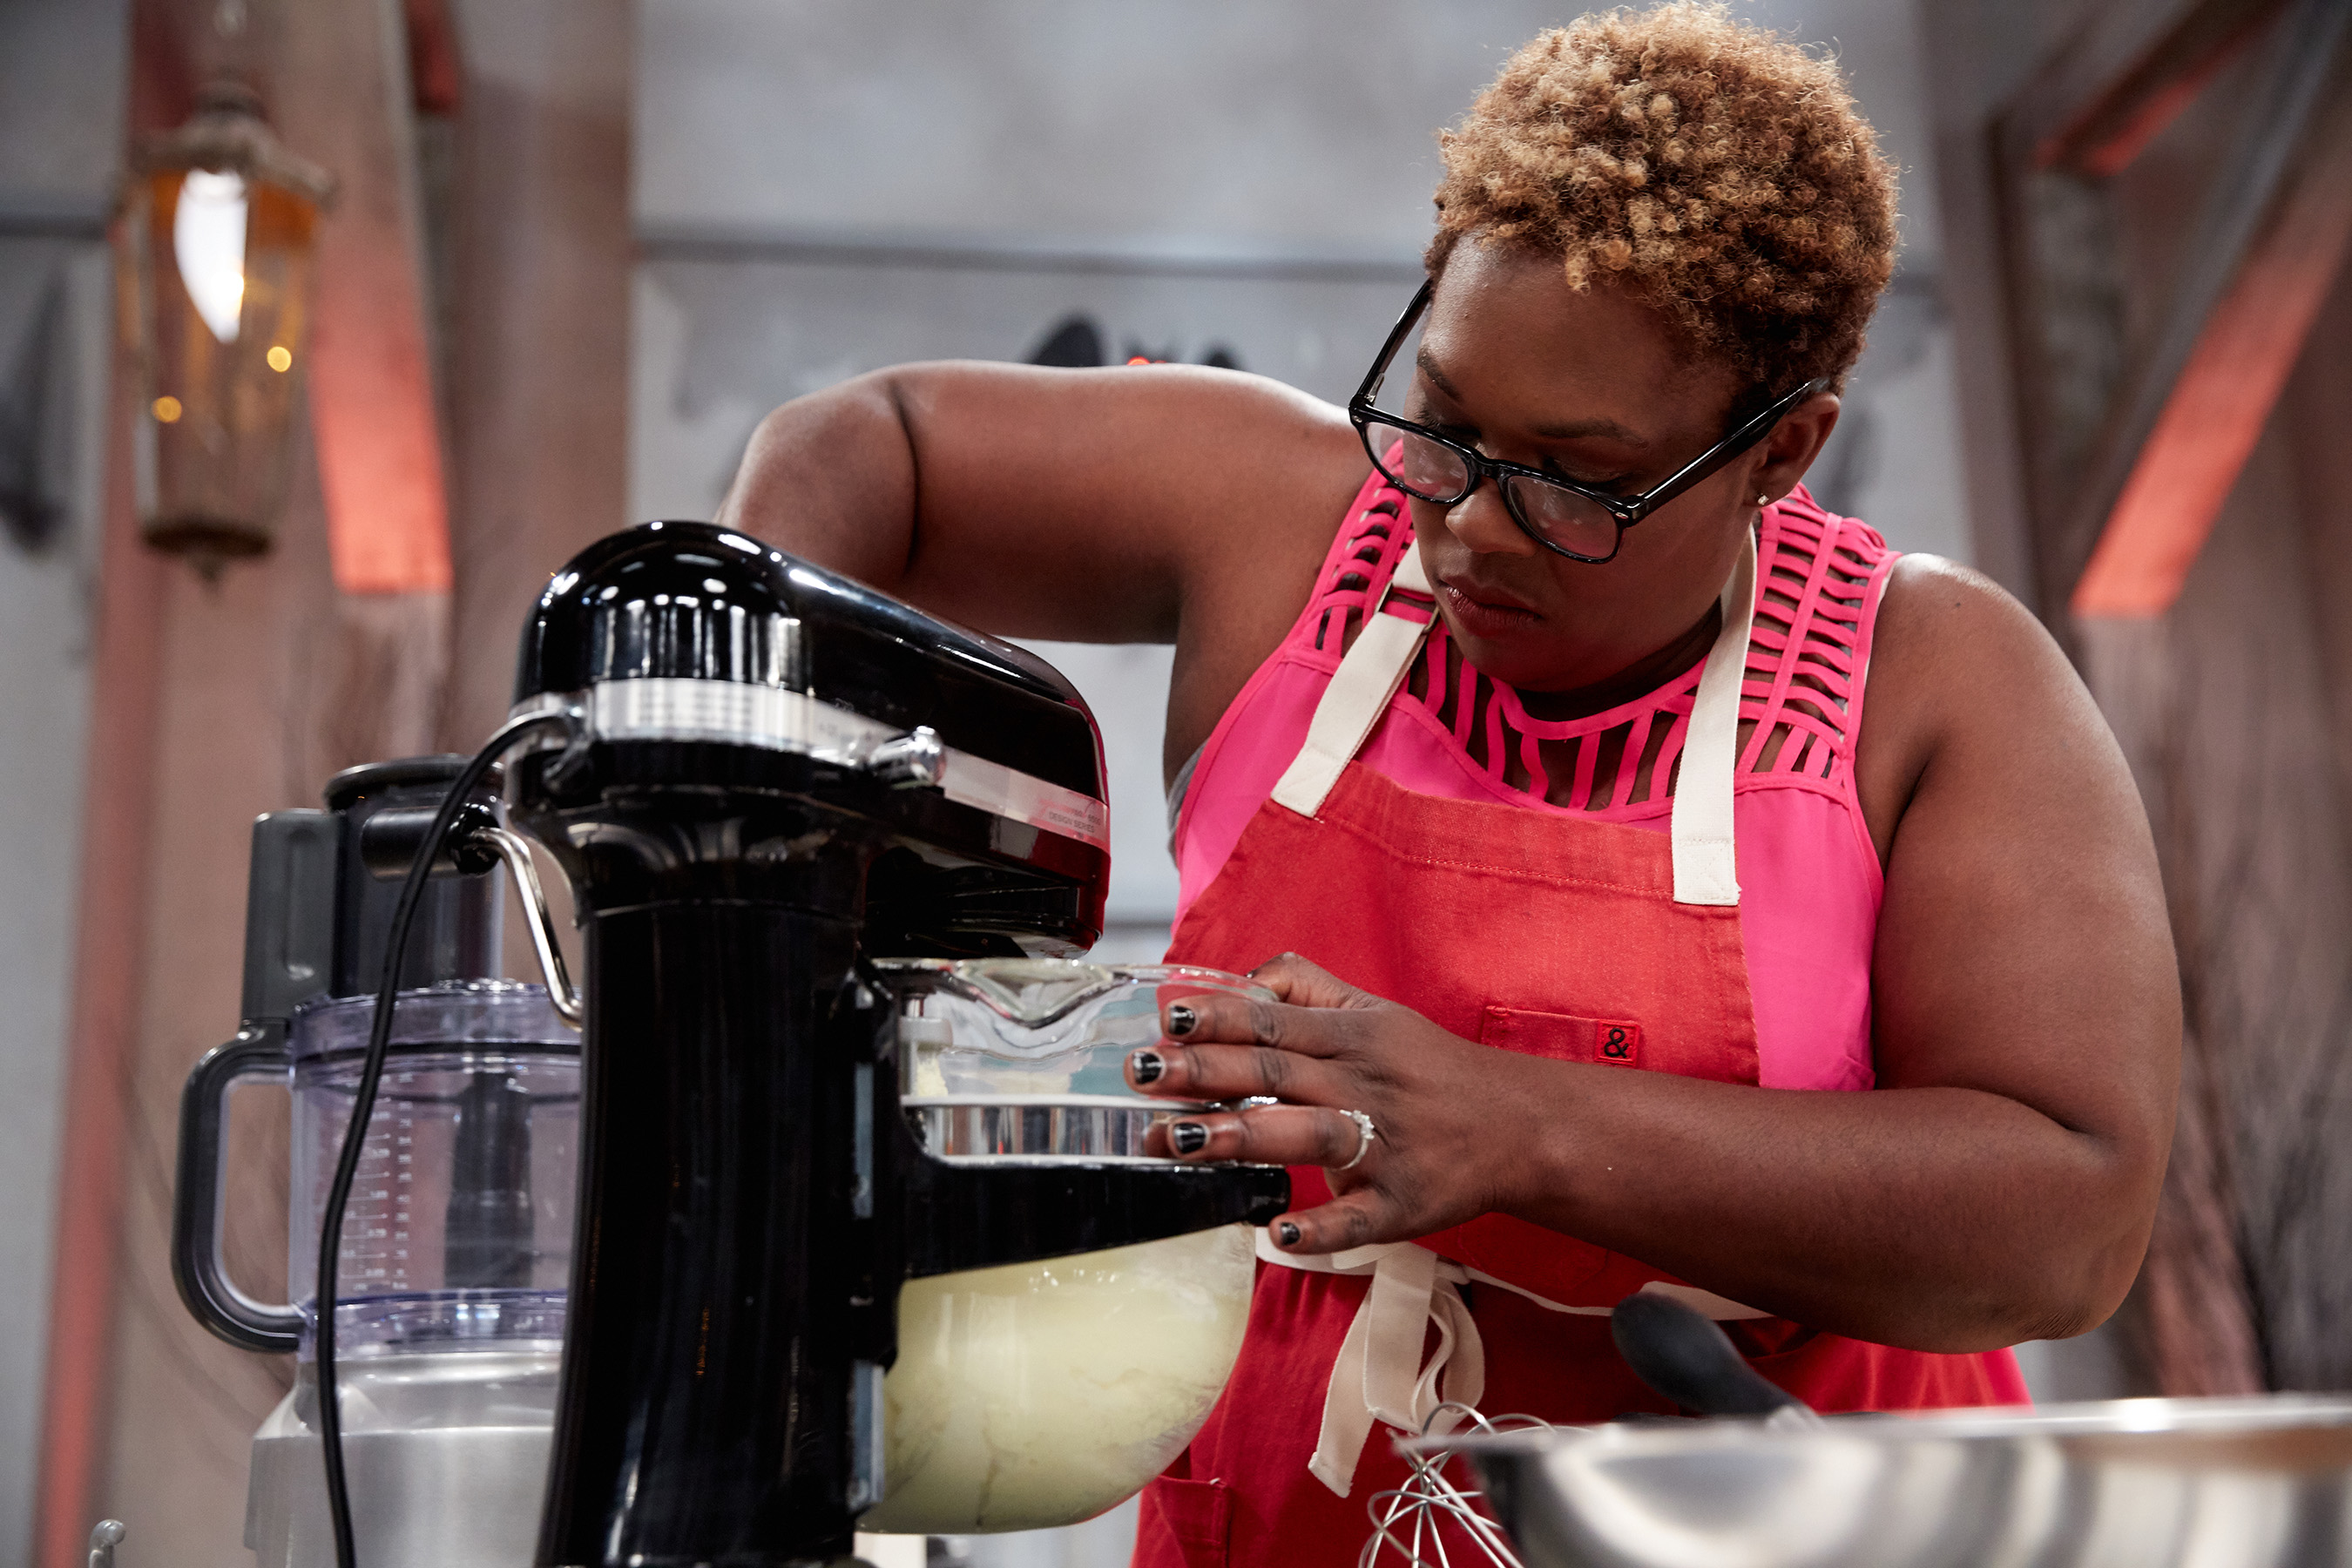 Halloween Baking Championship Contestant Tamara Brown During the Competition